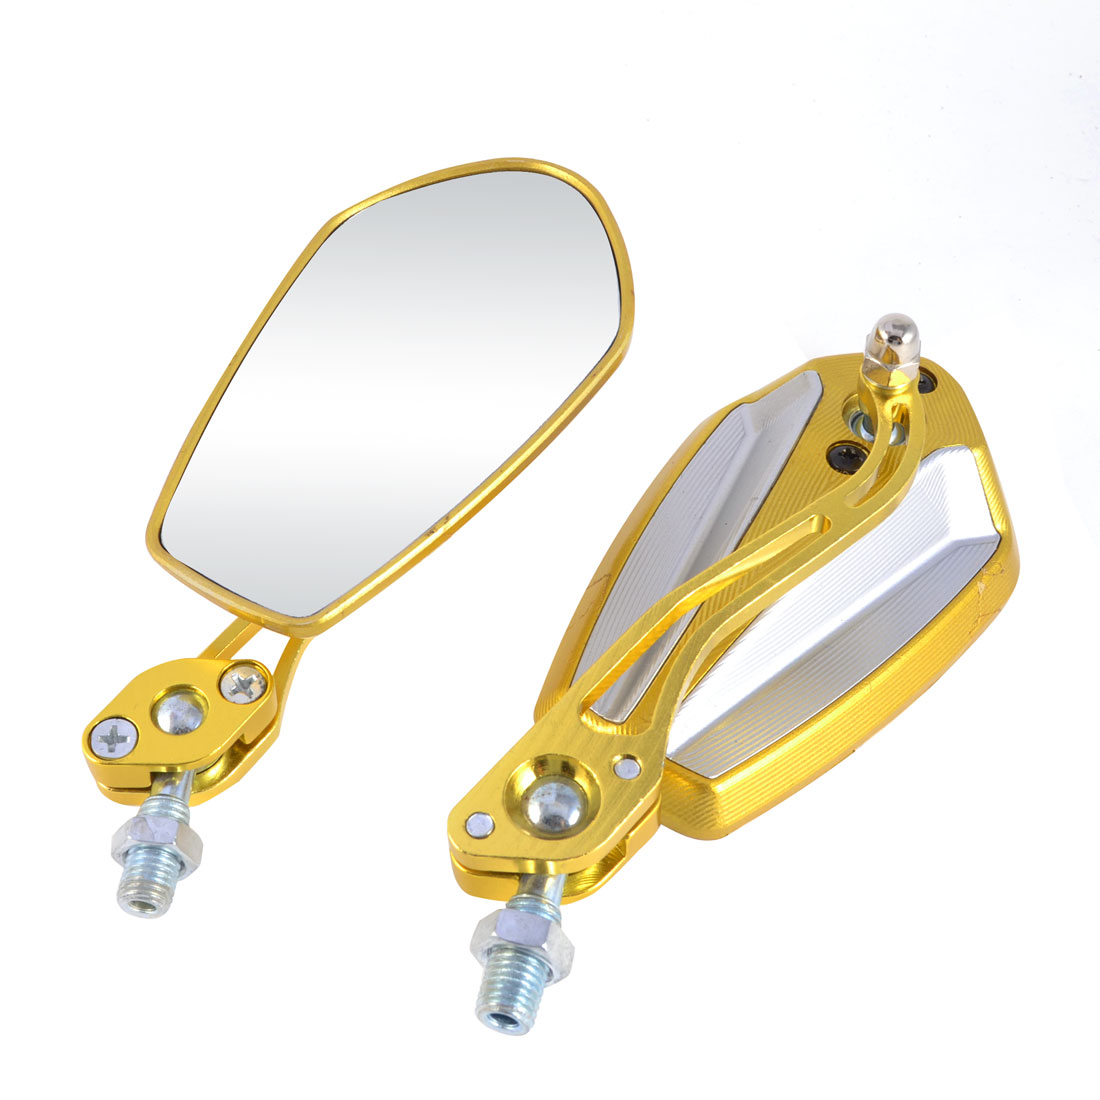 Pair Silver Gold Tone Polygon Shaped Rearview Mirrors for Motorbike Scooter